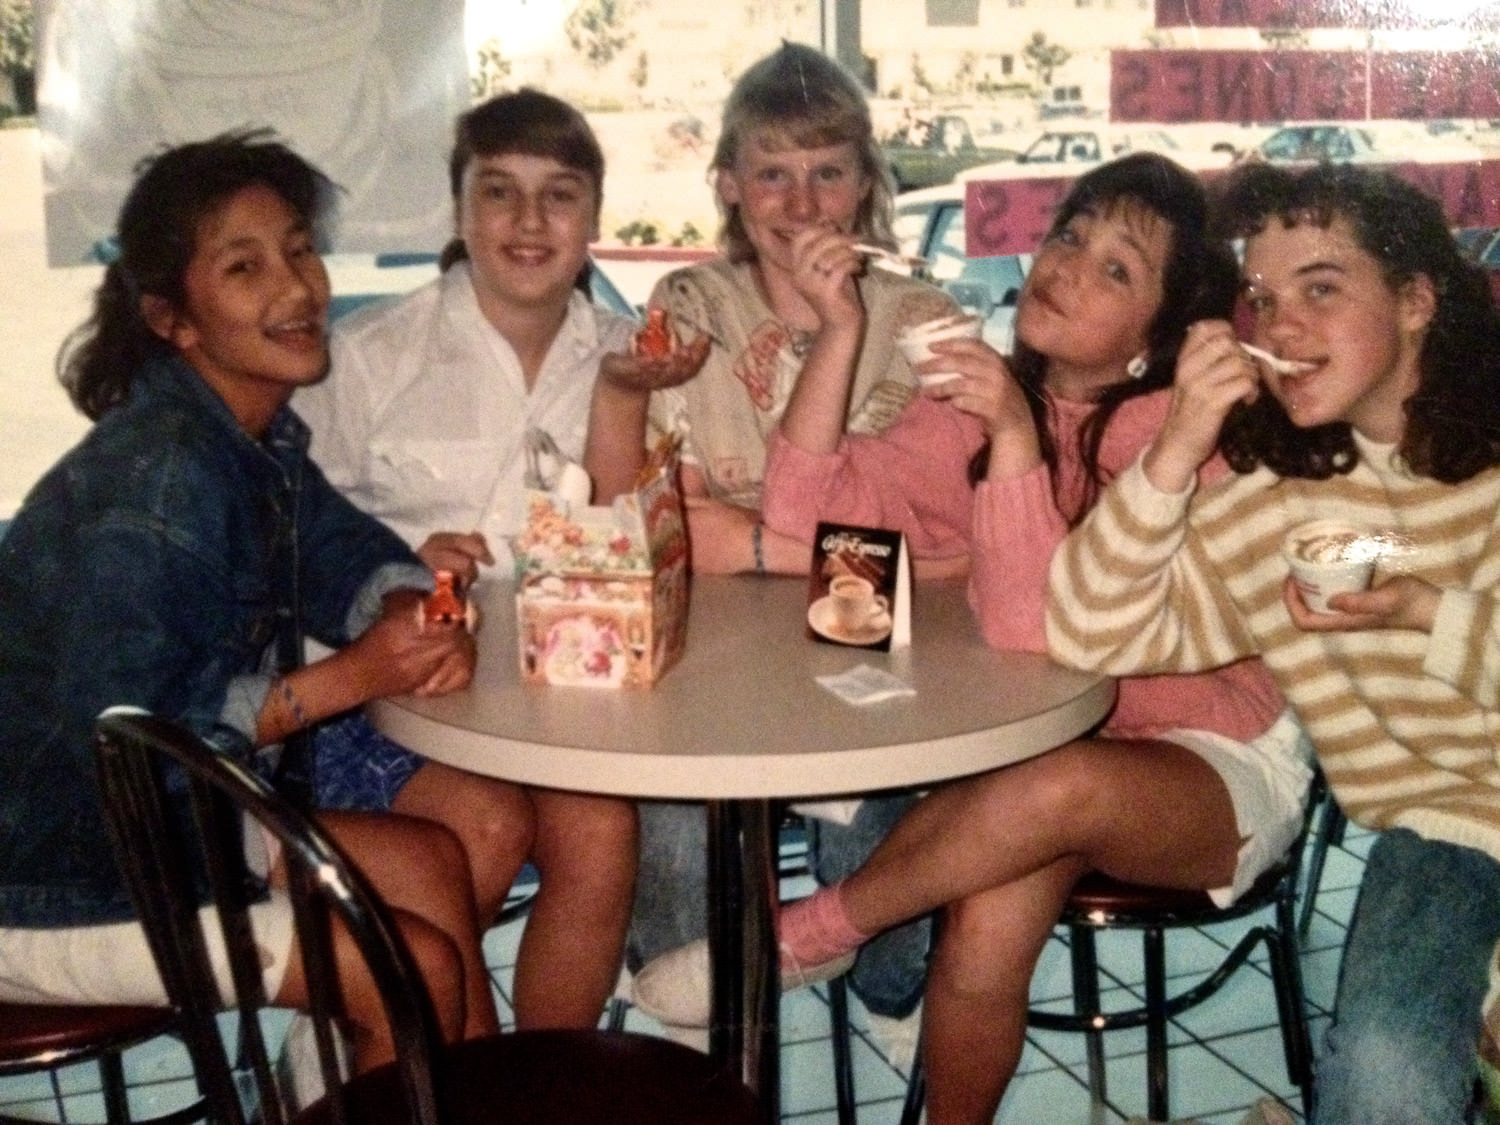 Junior high school girls in the 1980's.